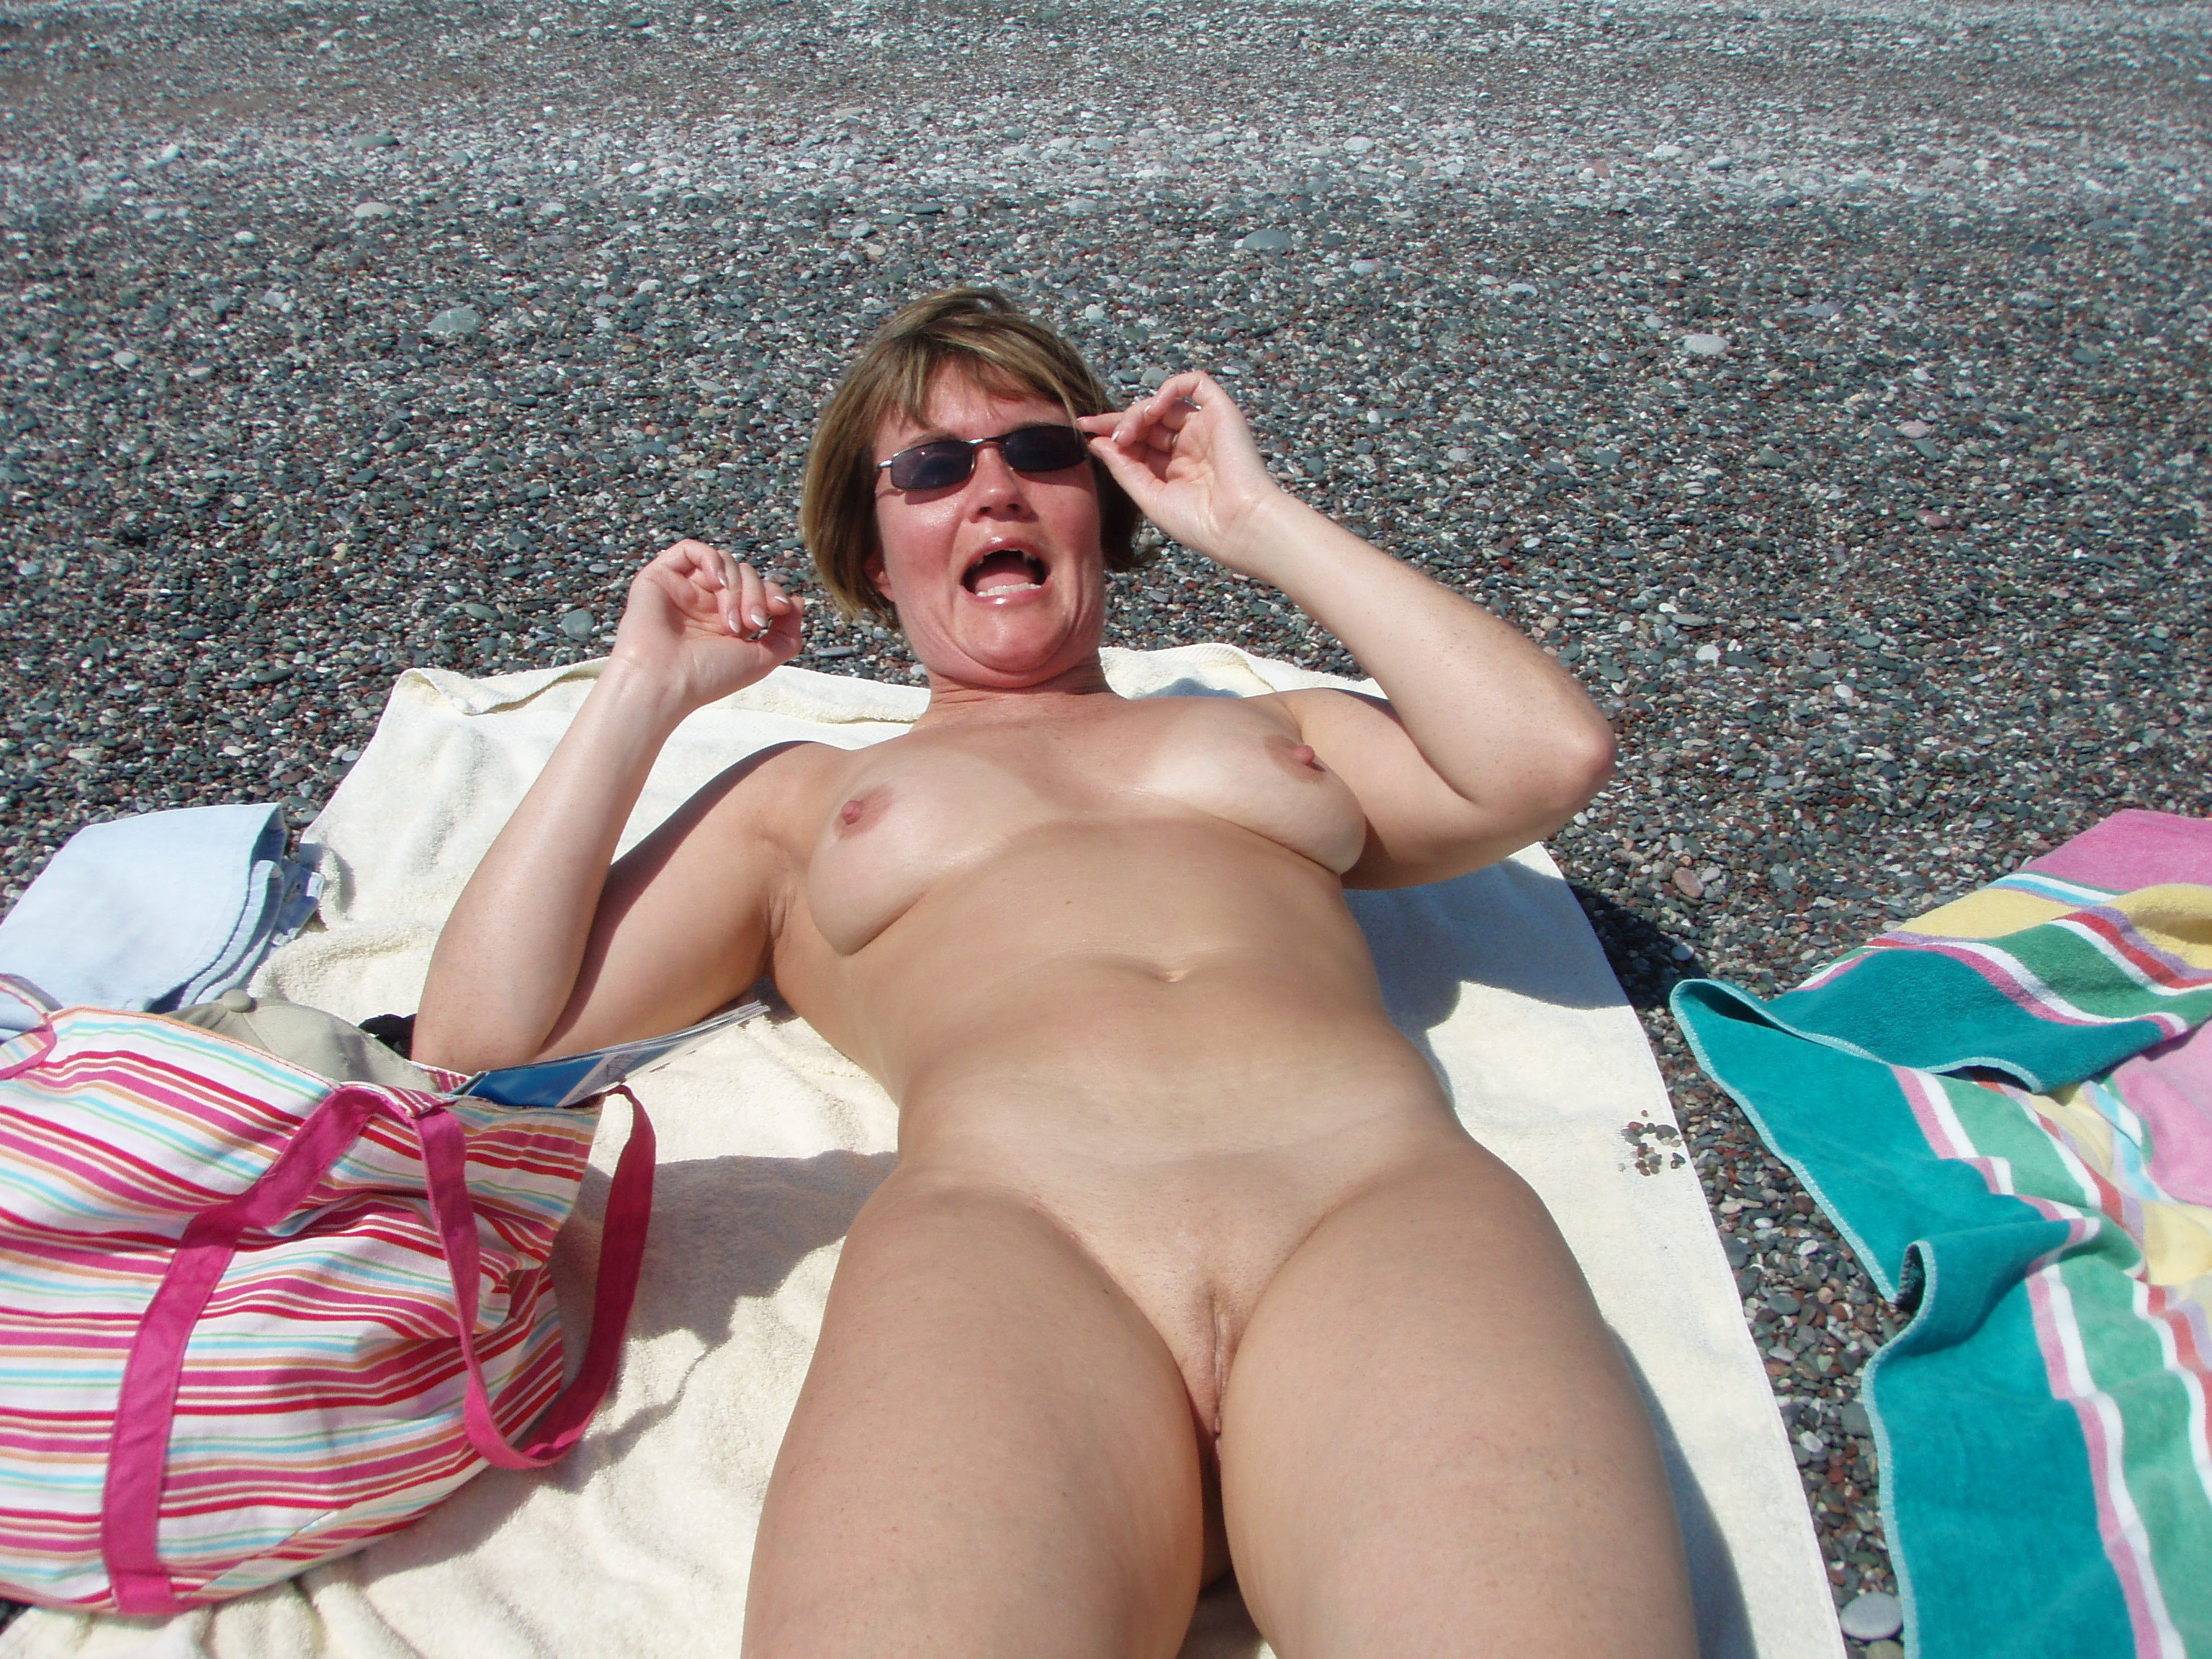 This Mature mom voyeur beach